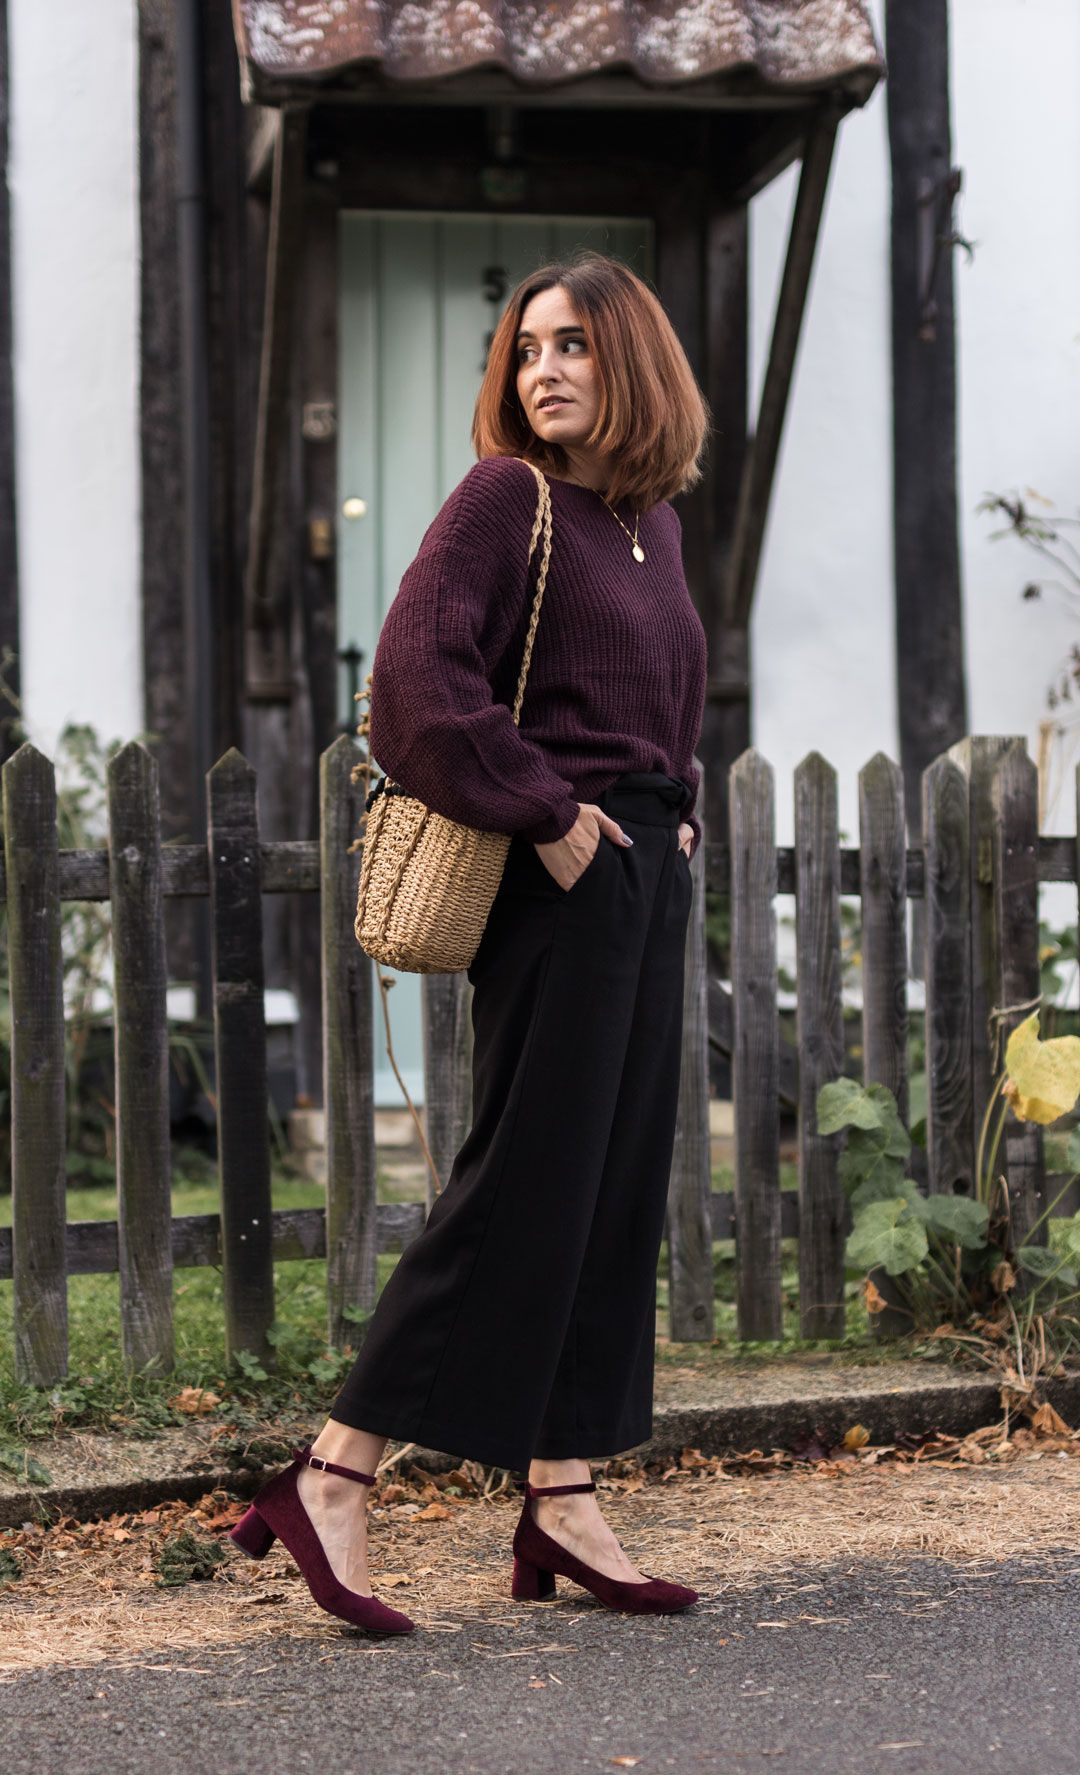 How to make the most of your summer wardrobe in autumn | #Fallfashion | #culottes | How to style culottes in winter | #effortlesschic | #raffiabag | #basketbag | #netbag | #meshbag | #balloonsleeves | #autumnoutfit | #outfitinspiration | She talks Glam | Saida Antolin | #summerpiecesforfall | How to transition your wardrobe into fall | #falloutfit | #classiclook | #chiclook | Cambridge Fashion | #minimalchic | #blackculottes | #ZARA | #anklestrapheels | #widelegtrousers